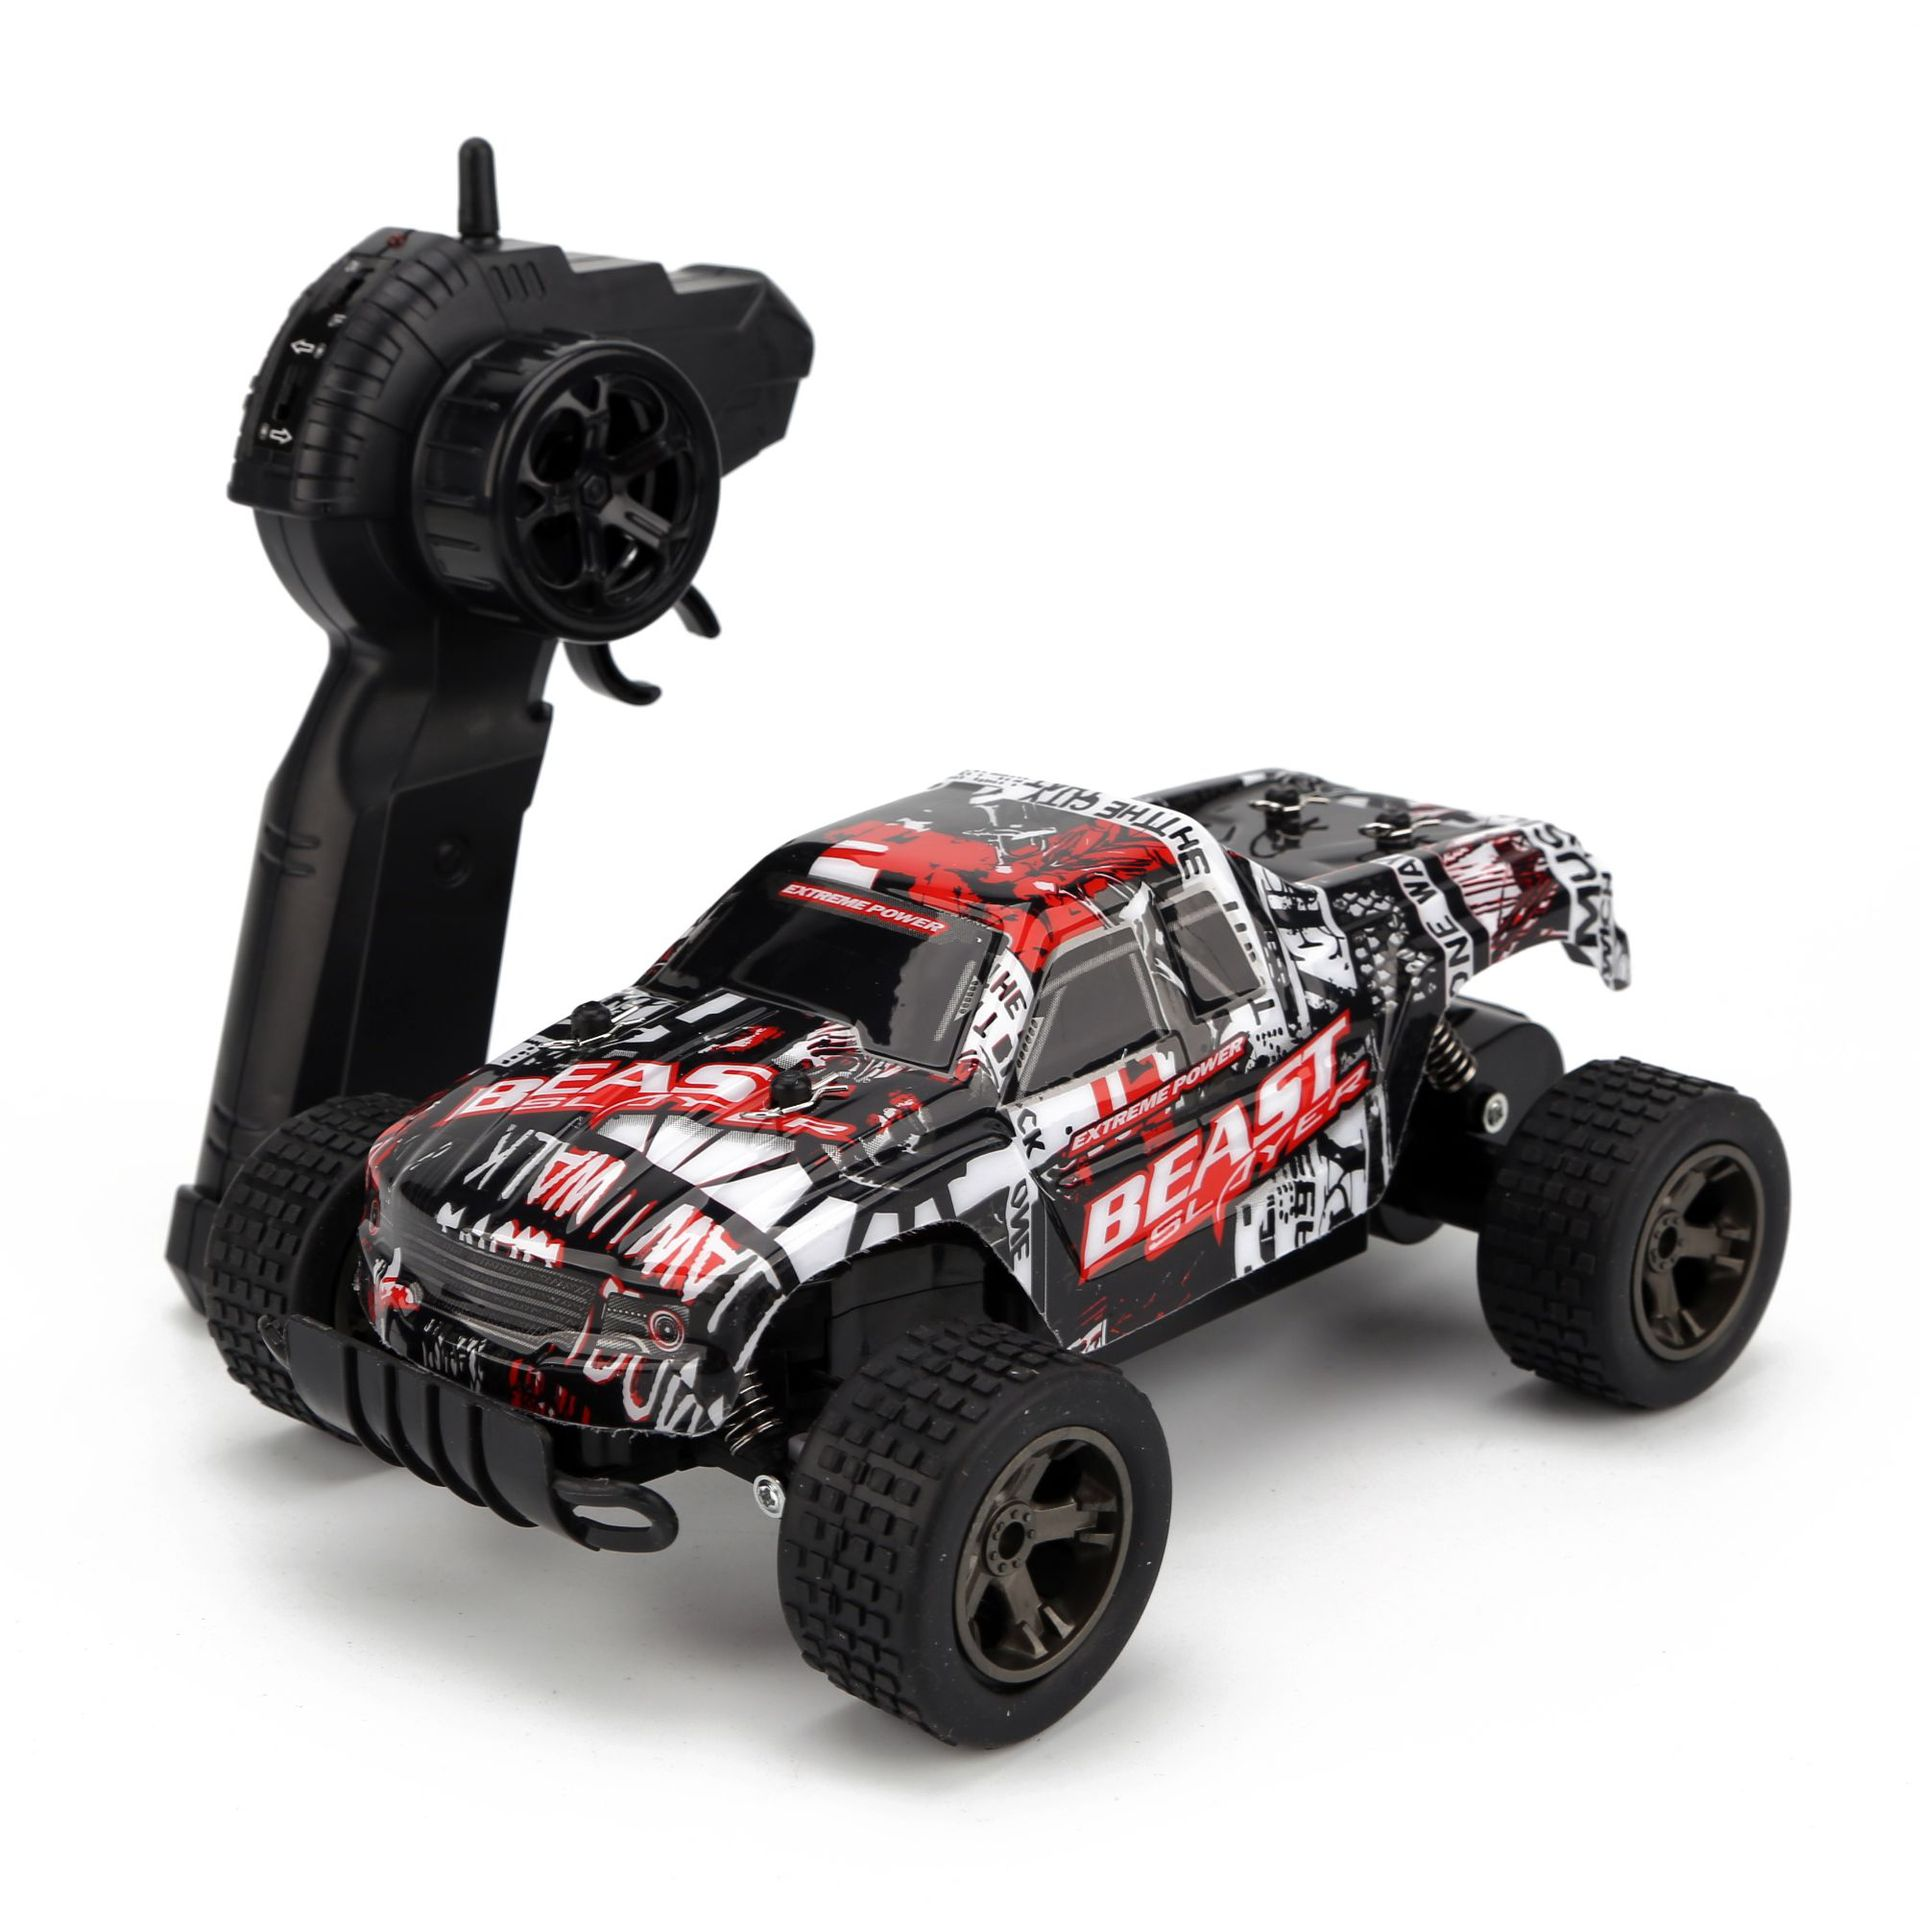 1:18 RC Car 4WD 2.4GHz 15Km/h climbing Car 4x4 Double Motors Bigfoot Car Remote Control Model Off-Road Vehicle Toy